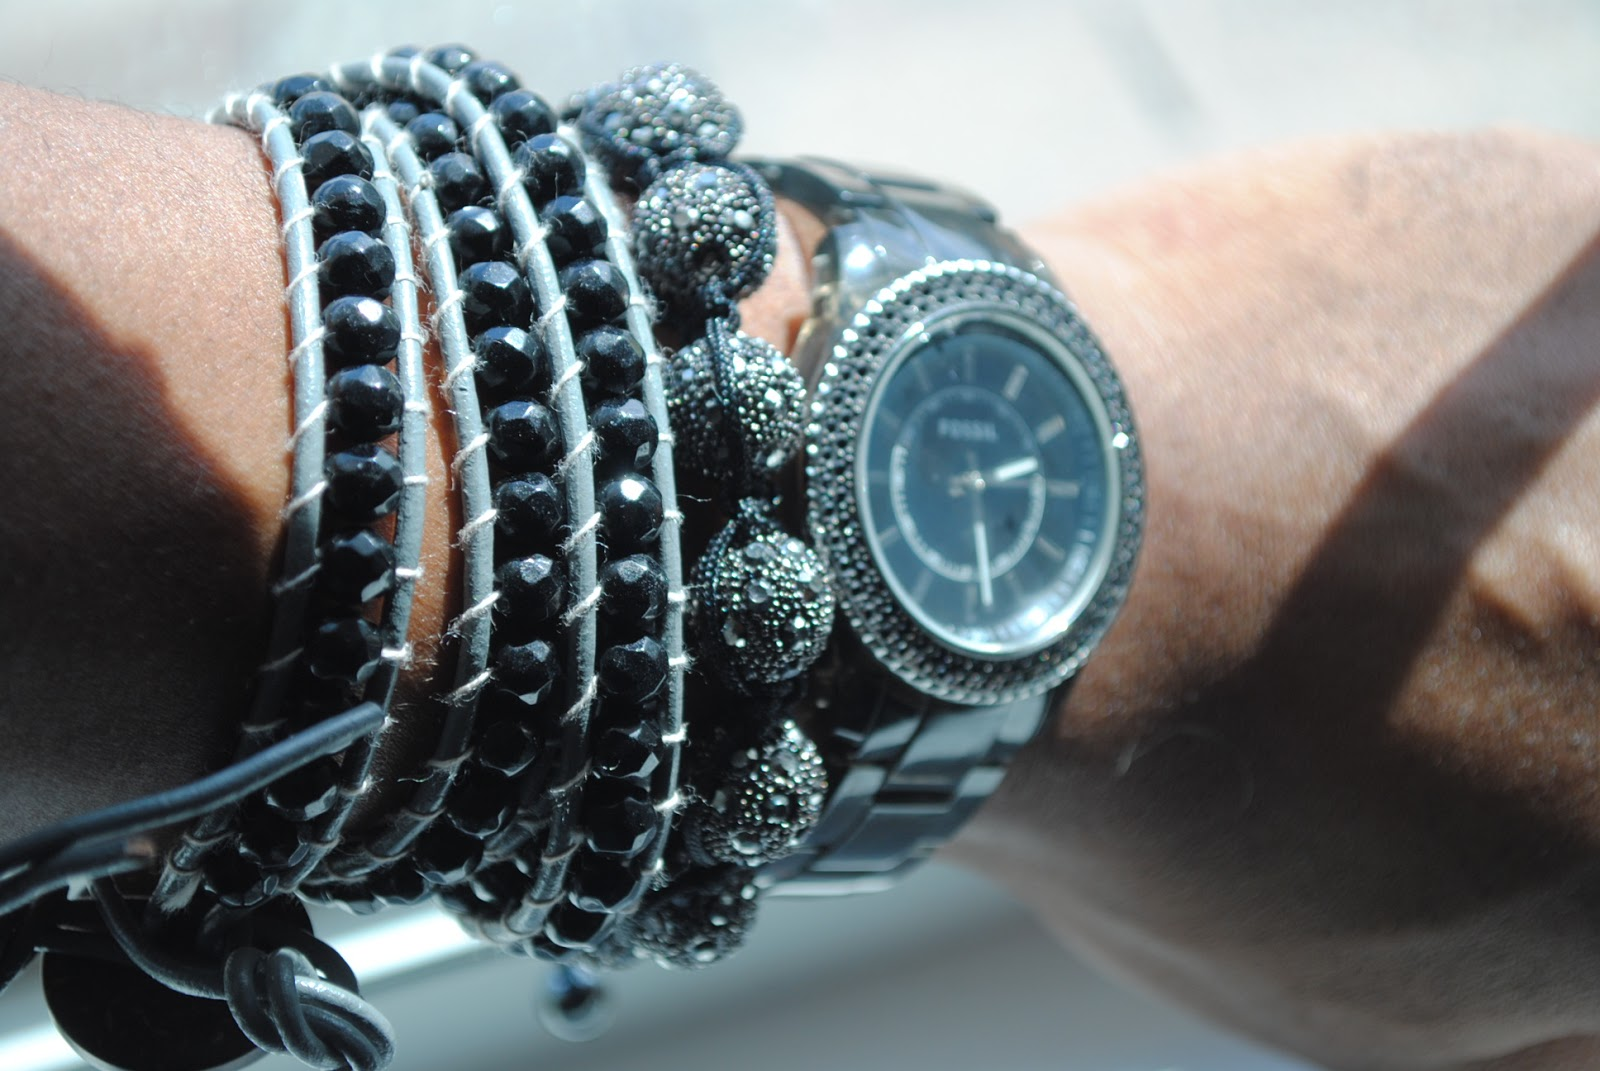 Be a Man: Wear Jewelry - GQ - Men's Fashion, Style ...